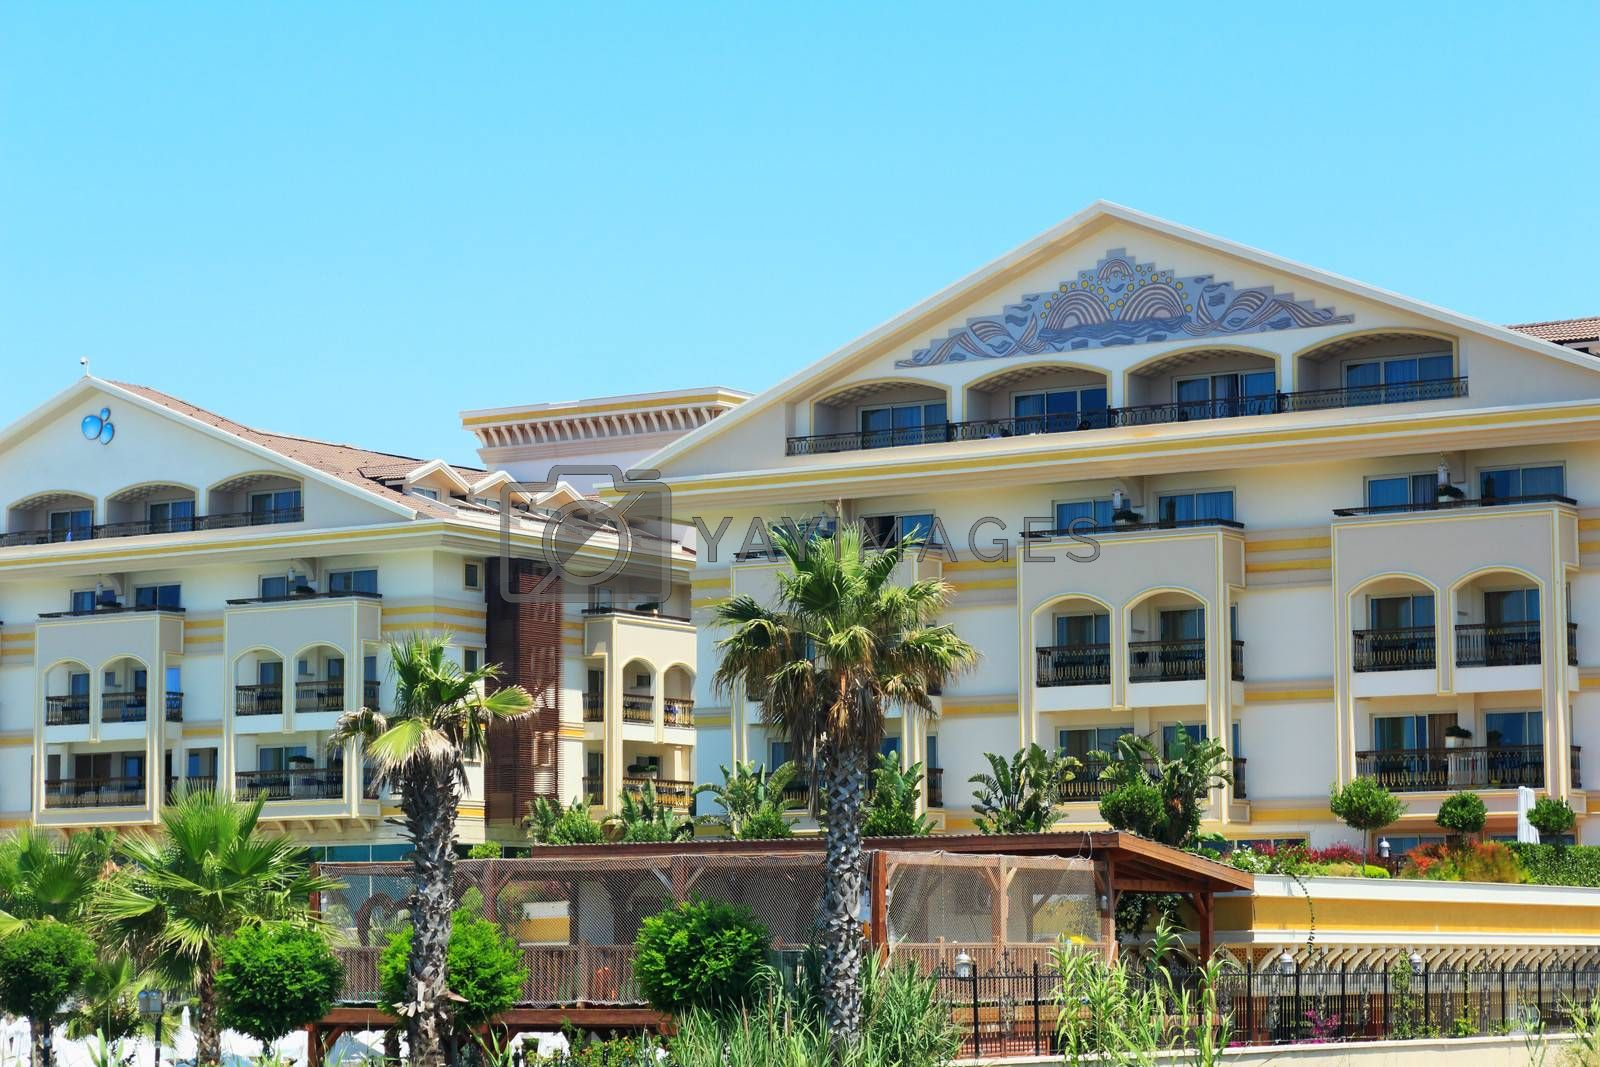 Modern and comfortable resort located on the sea coast.